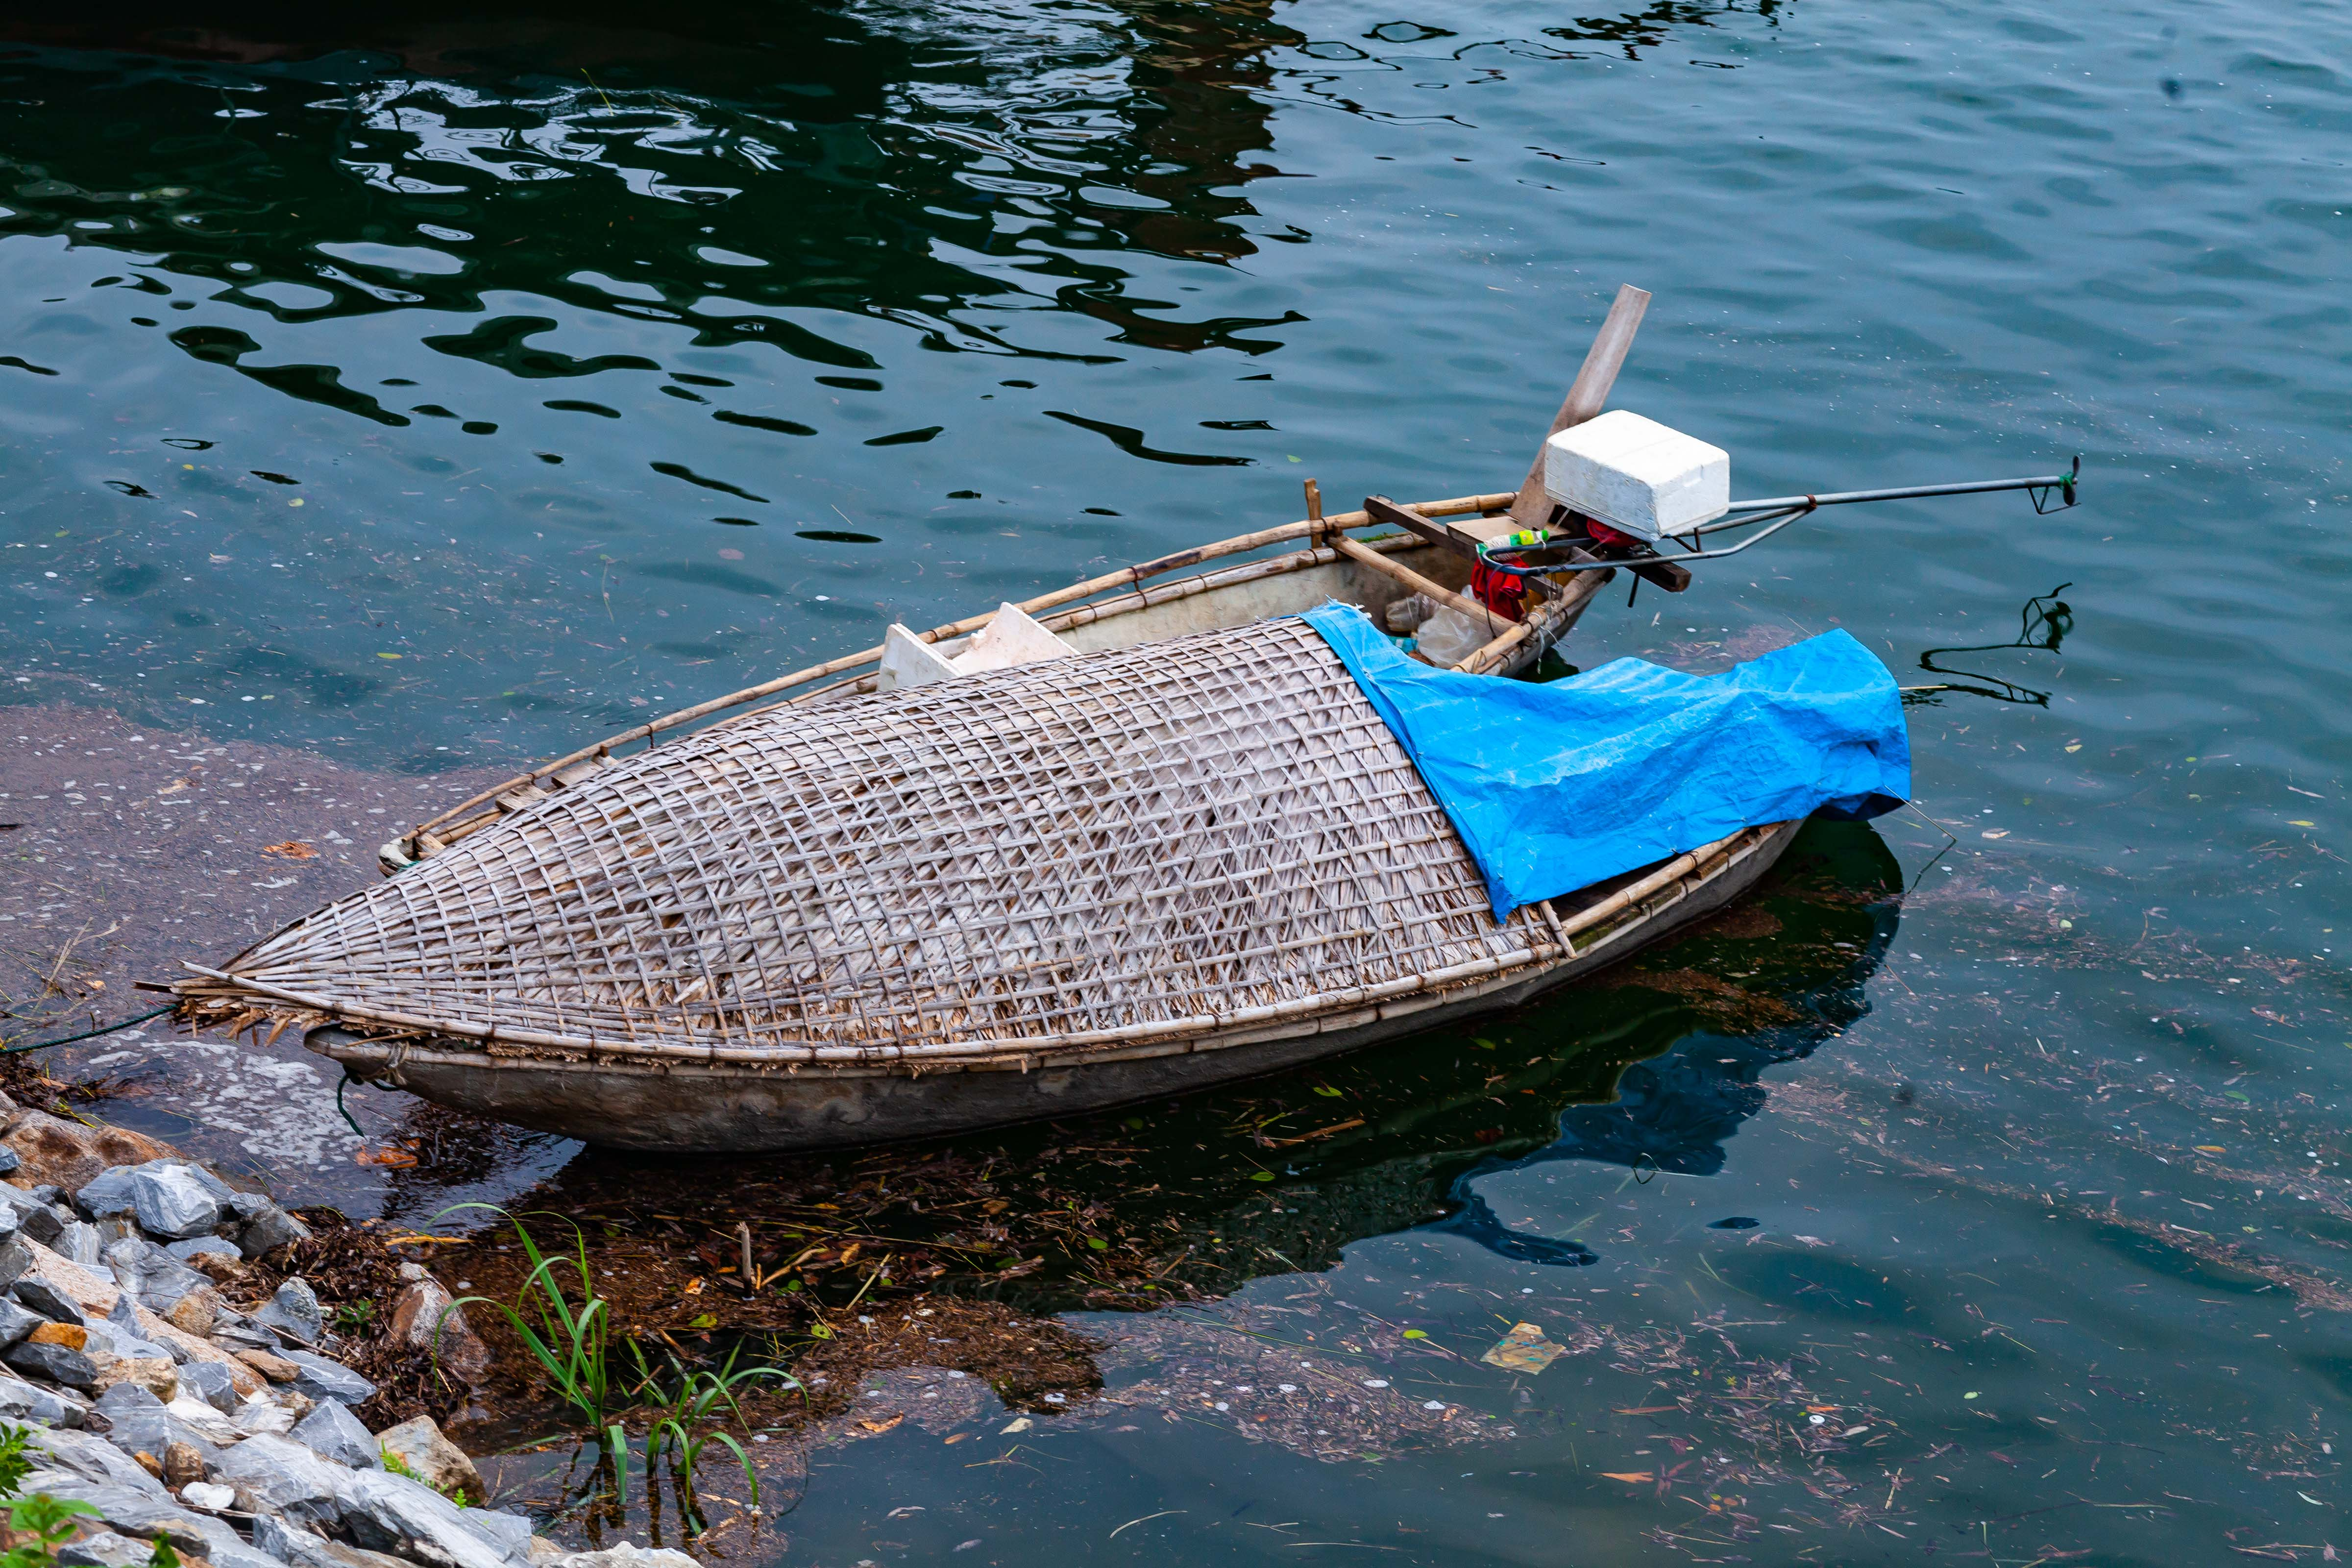 Vietnam, Yen Bai Prov, Covered Fishing Boat, 2011, IMG 1137